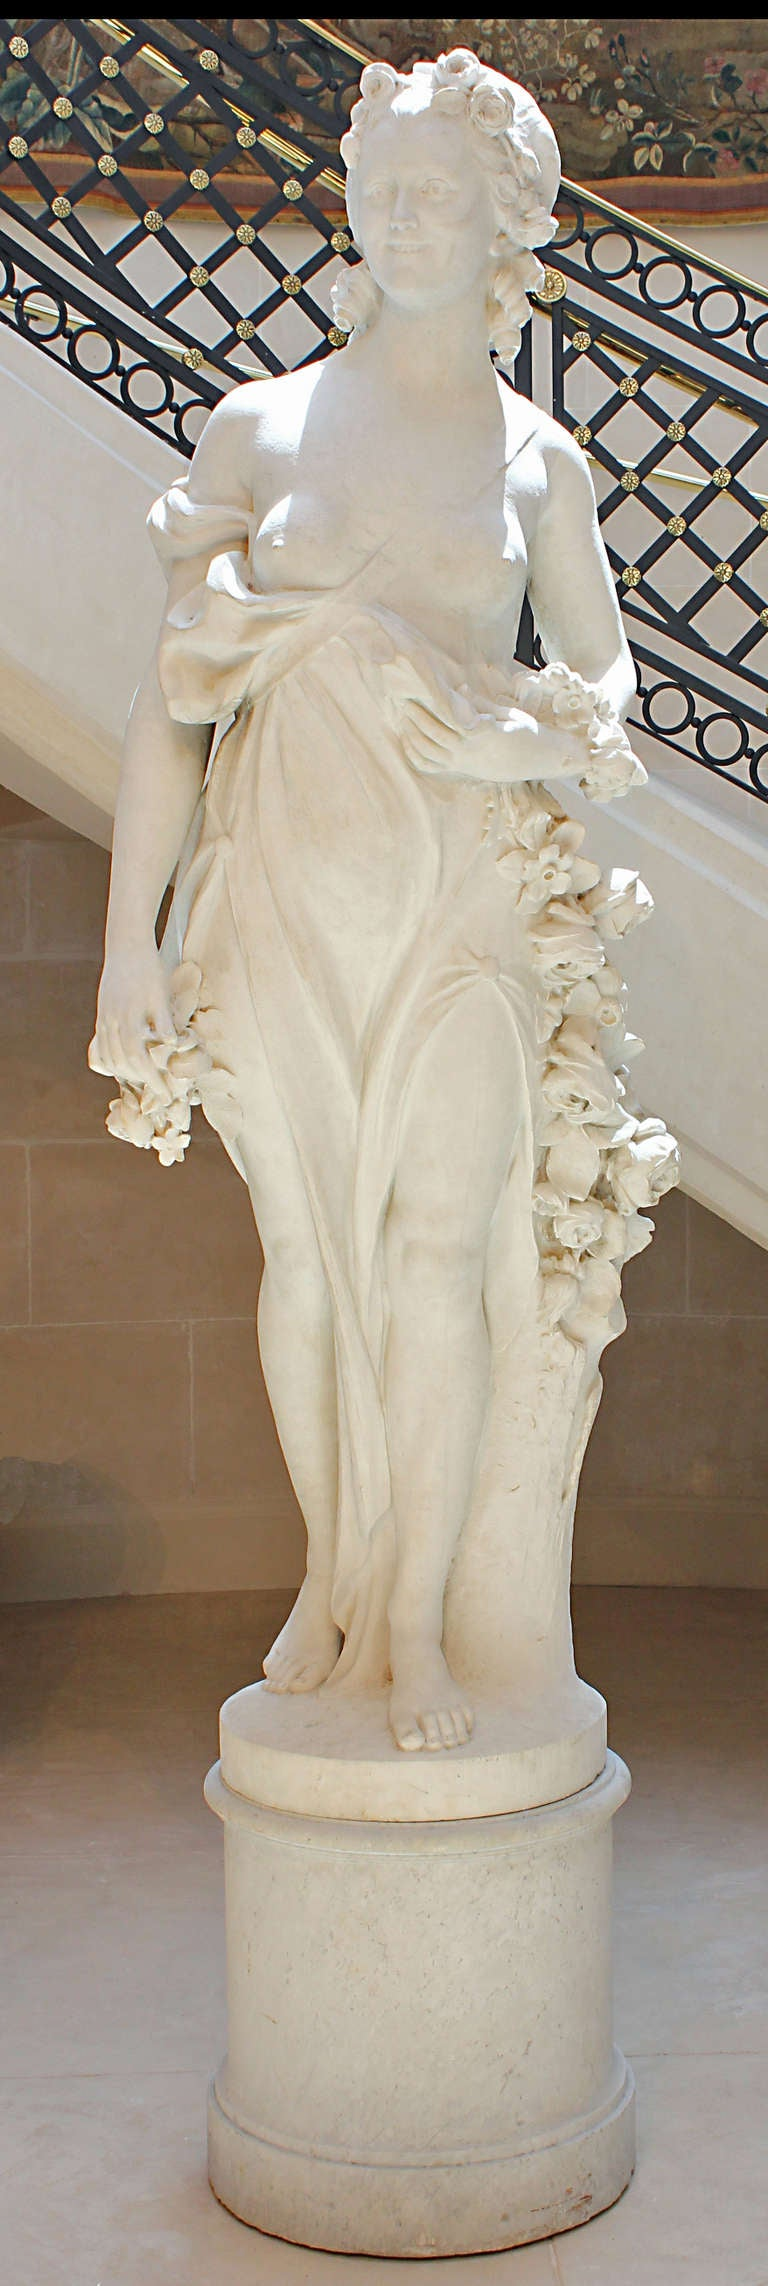 White Marble Statue : French mid th century white carrara marble statue for